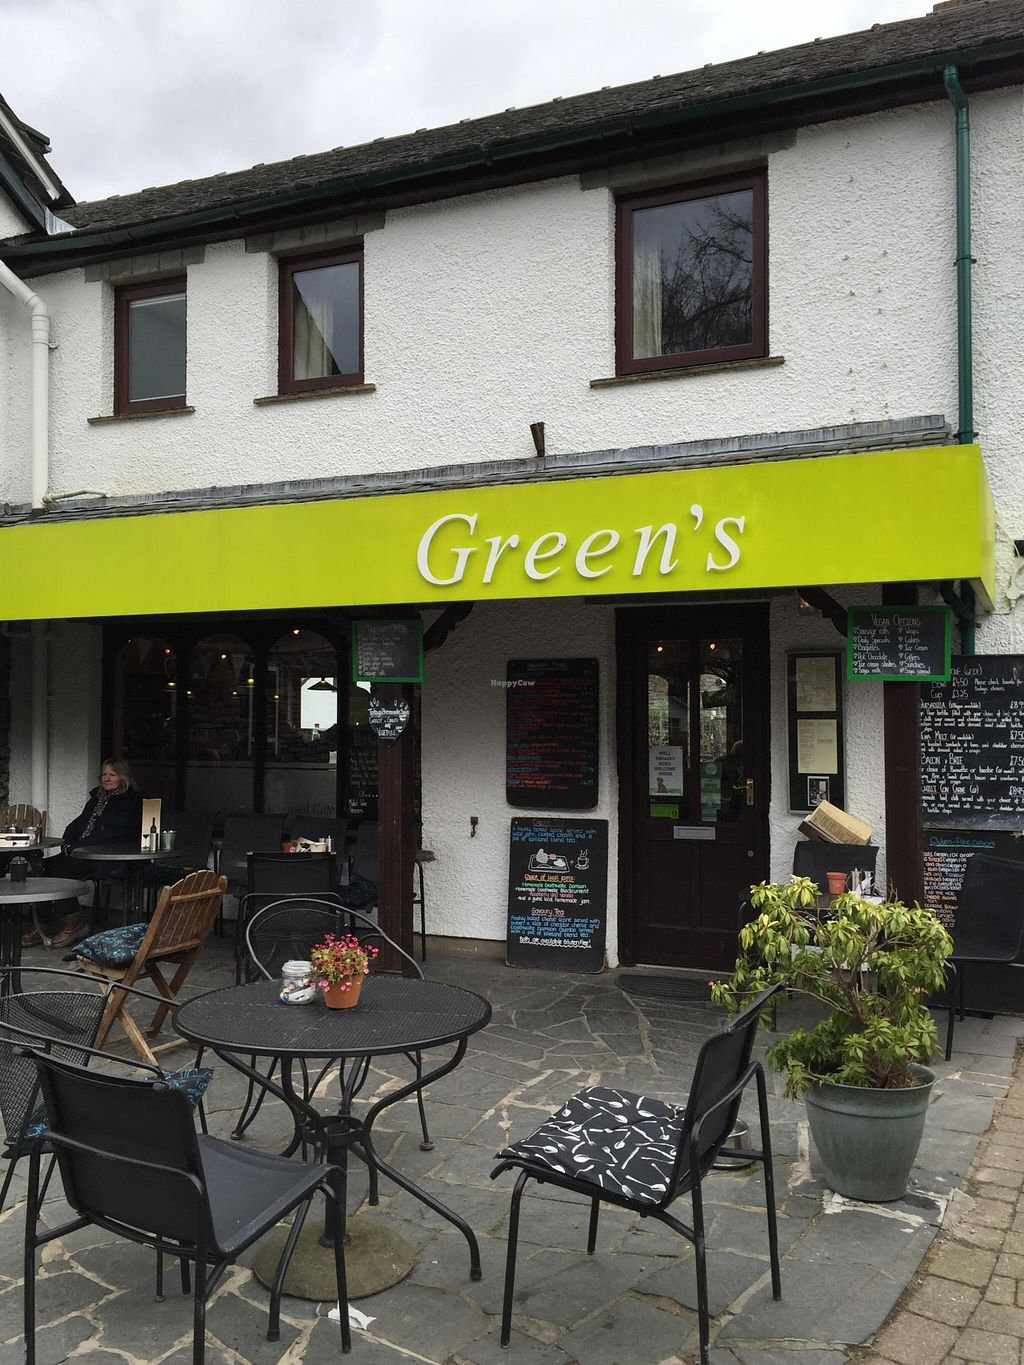 """Photo of Greens Cafe  by <a href=""""/members/profile/Squirrel64"""">Squirrel64</a> <br/>Shop front <br/> March 21, 2016  - <a href='/contact/abuse/image/32367/140836'>Report</a>"""